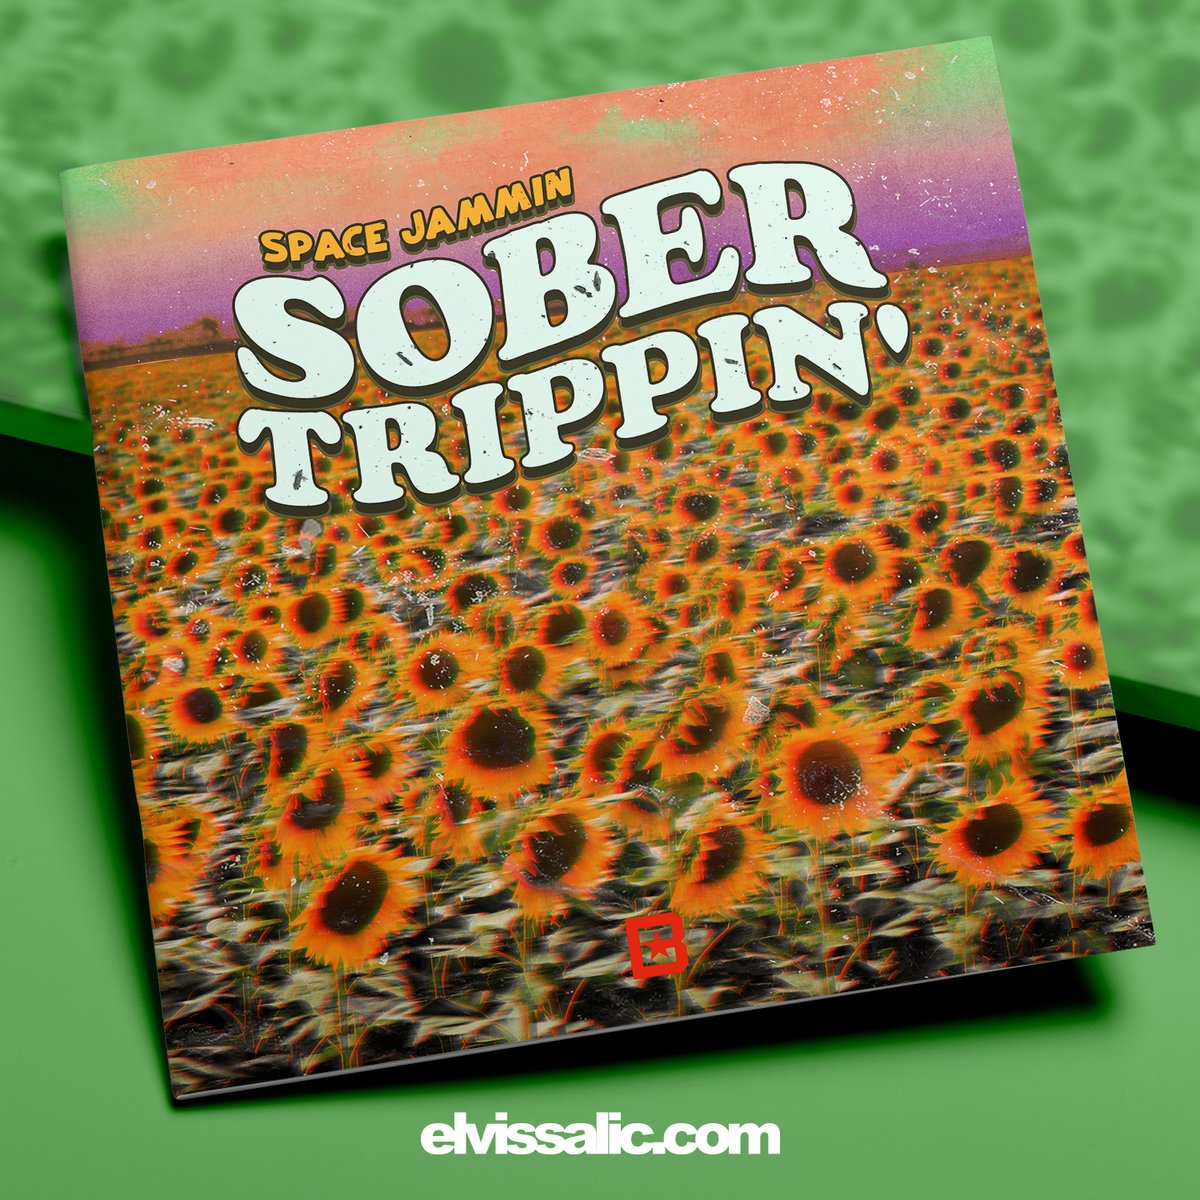 Sober Trippin' Beat tape cover design  #graphic #design #graphicdesign #cover #funk #beats #music #artist #producer #photoshop #designoftheday #musicdesign #coveroftheday #adobephotoshop #coverdesign #beattape #musicproducer #hiphop #dancemusic https://t.co/674iaXvRRx